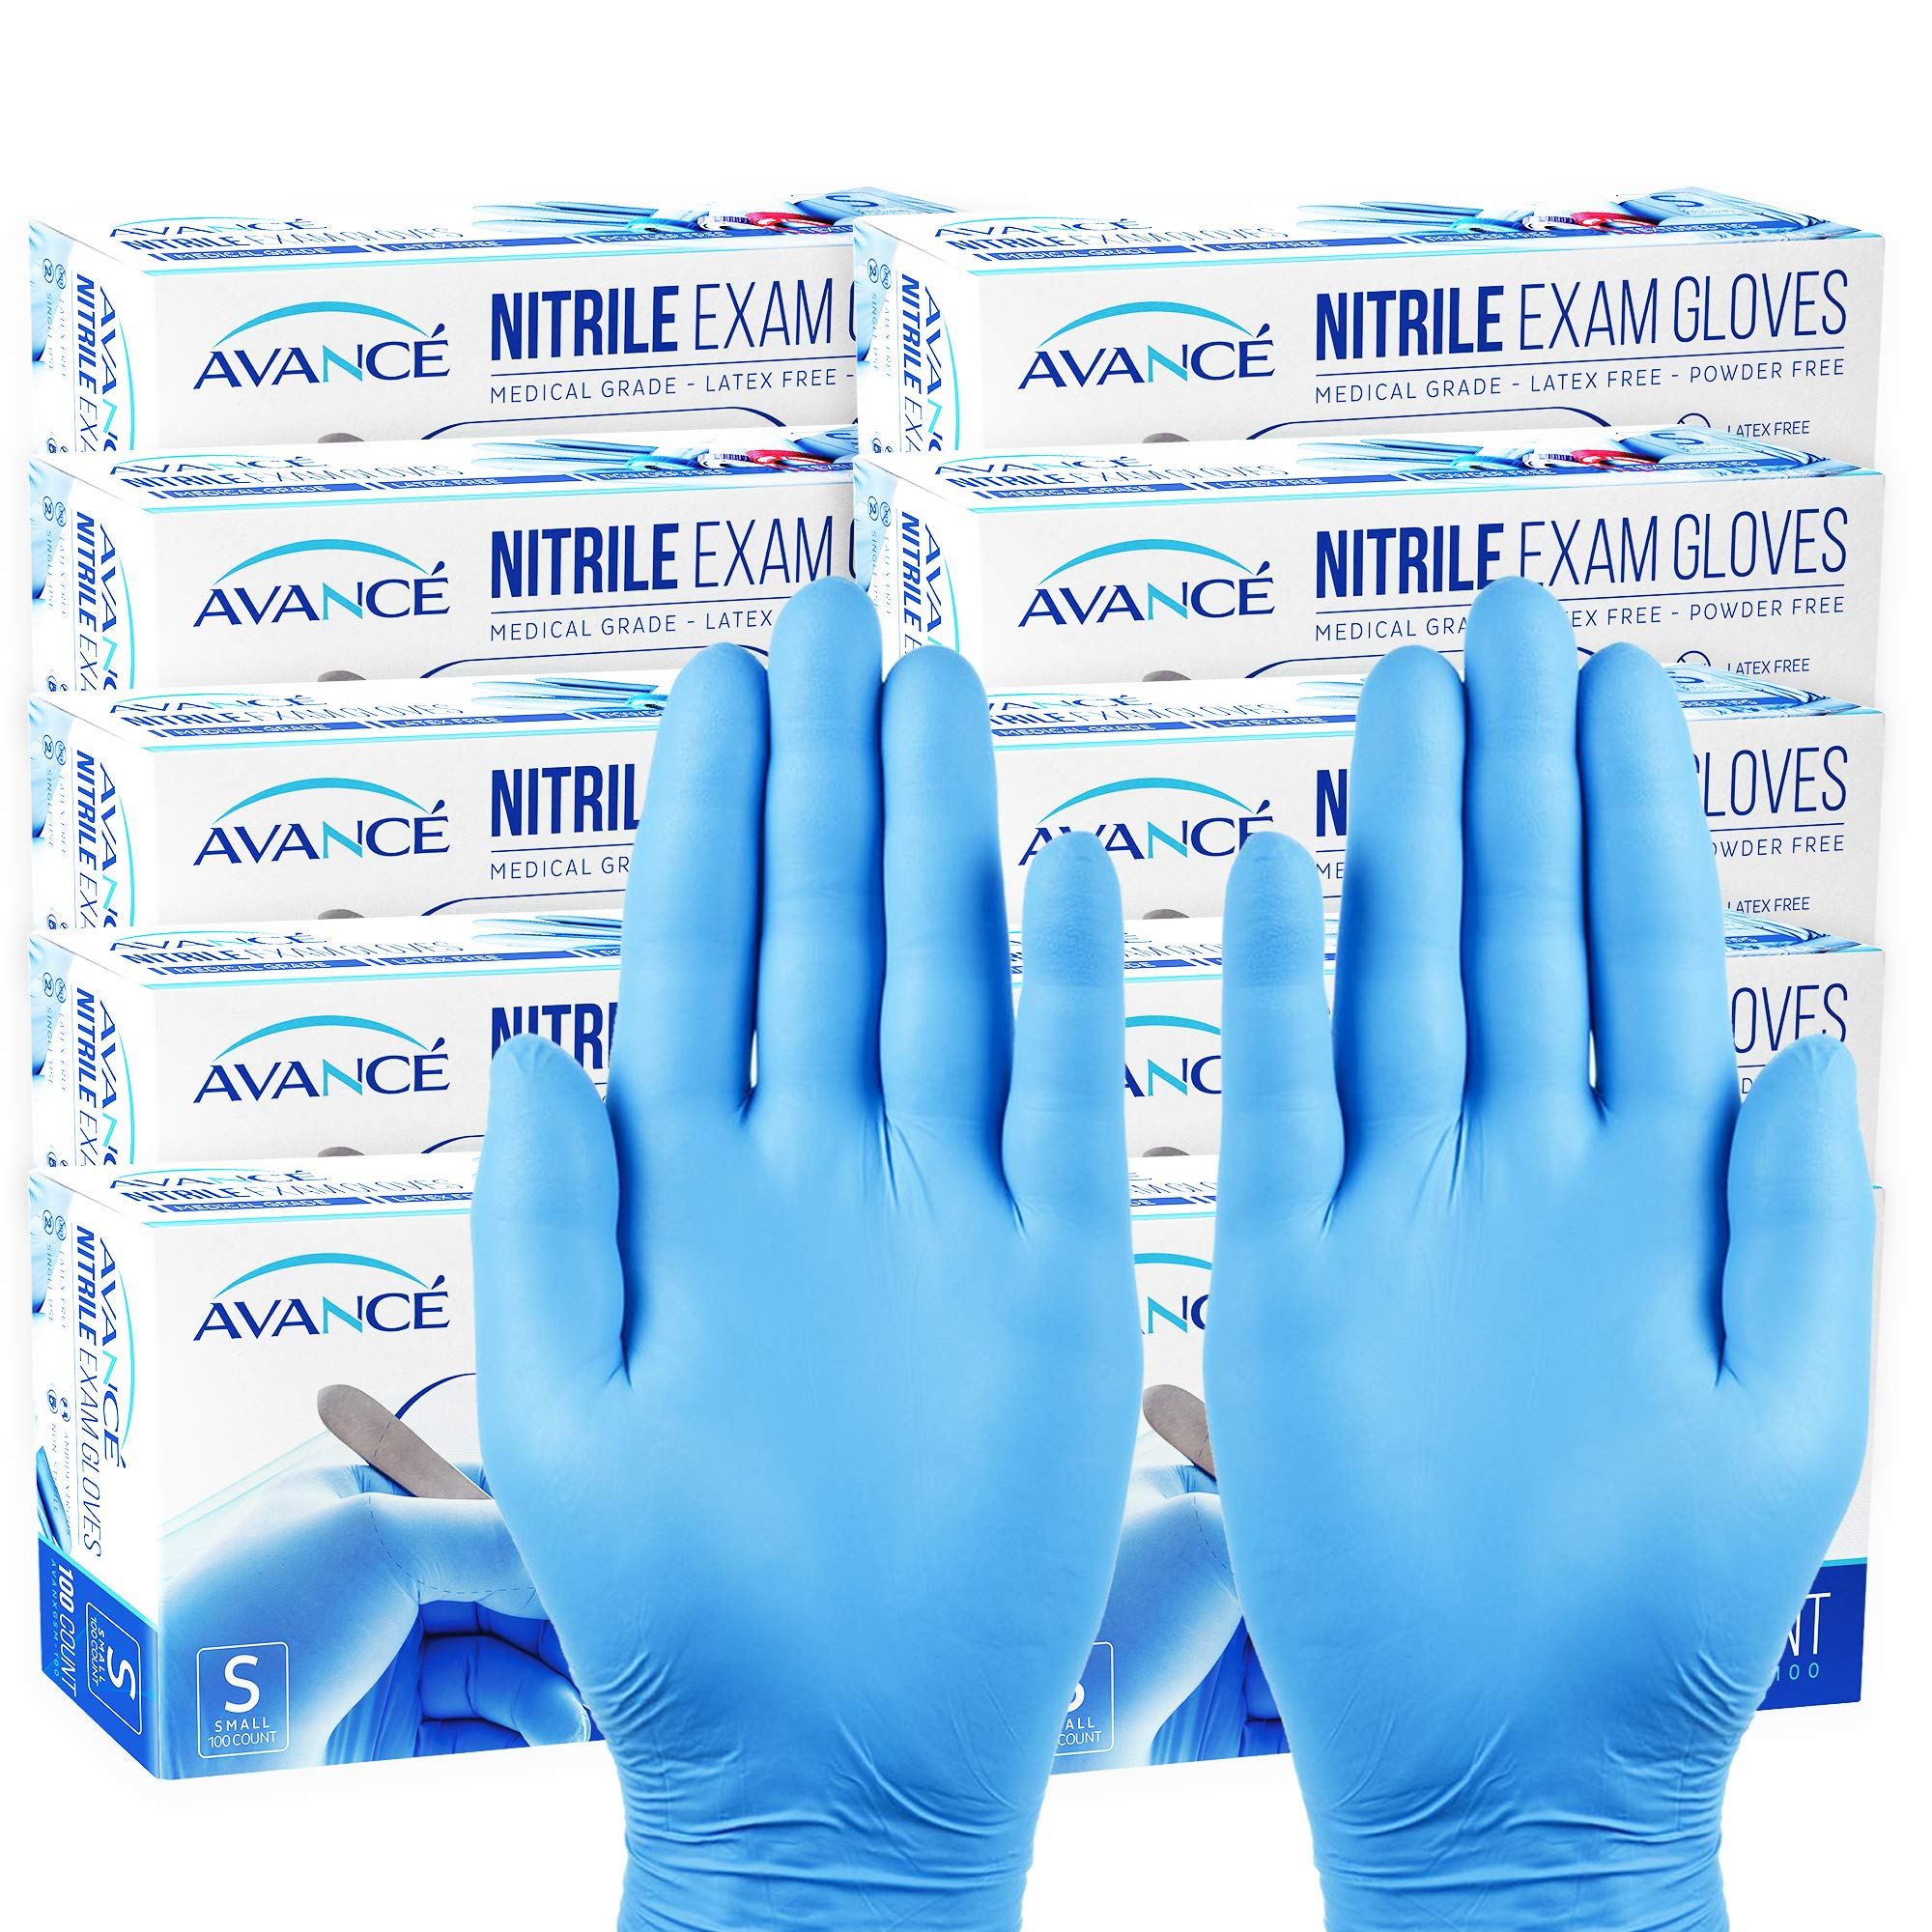 Avancé Nitrile Exam Gloves Medical Grade Powder-Free Textured Fingertips Latex-Free Synthetic Rubber Non-Sterile Disposable Ambidextrous Single Use, 3 Mil Thickness, Blue, Small, 10-Pack (1000) by AVANCÉ